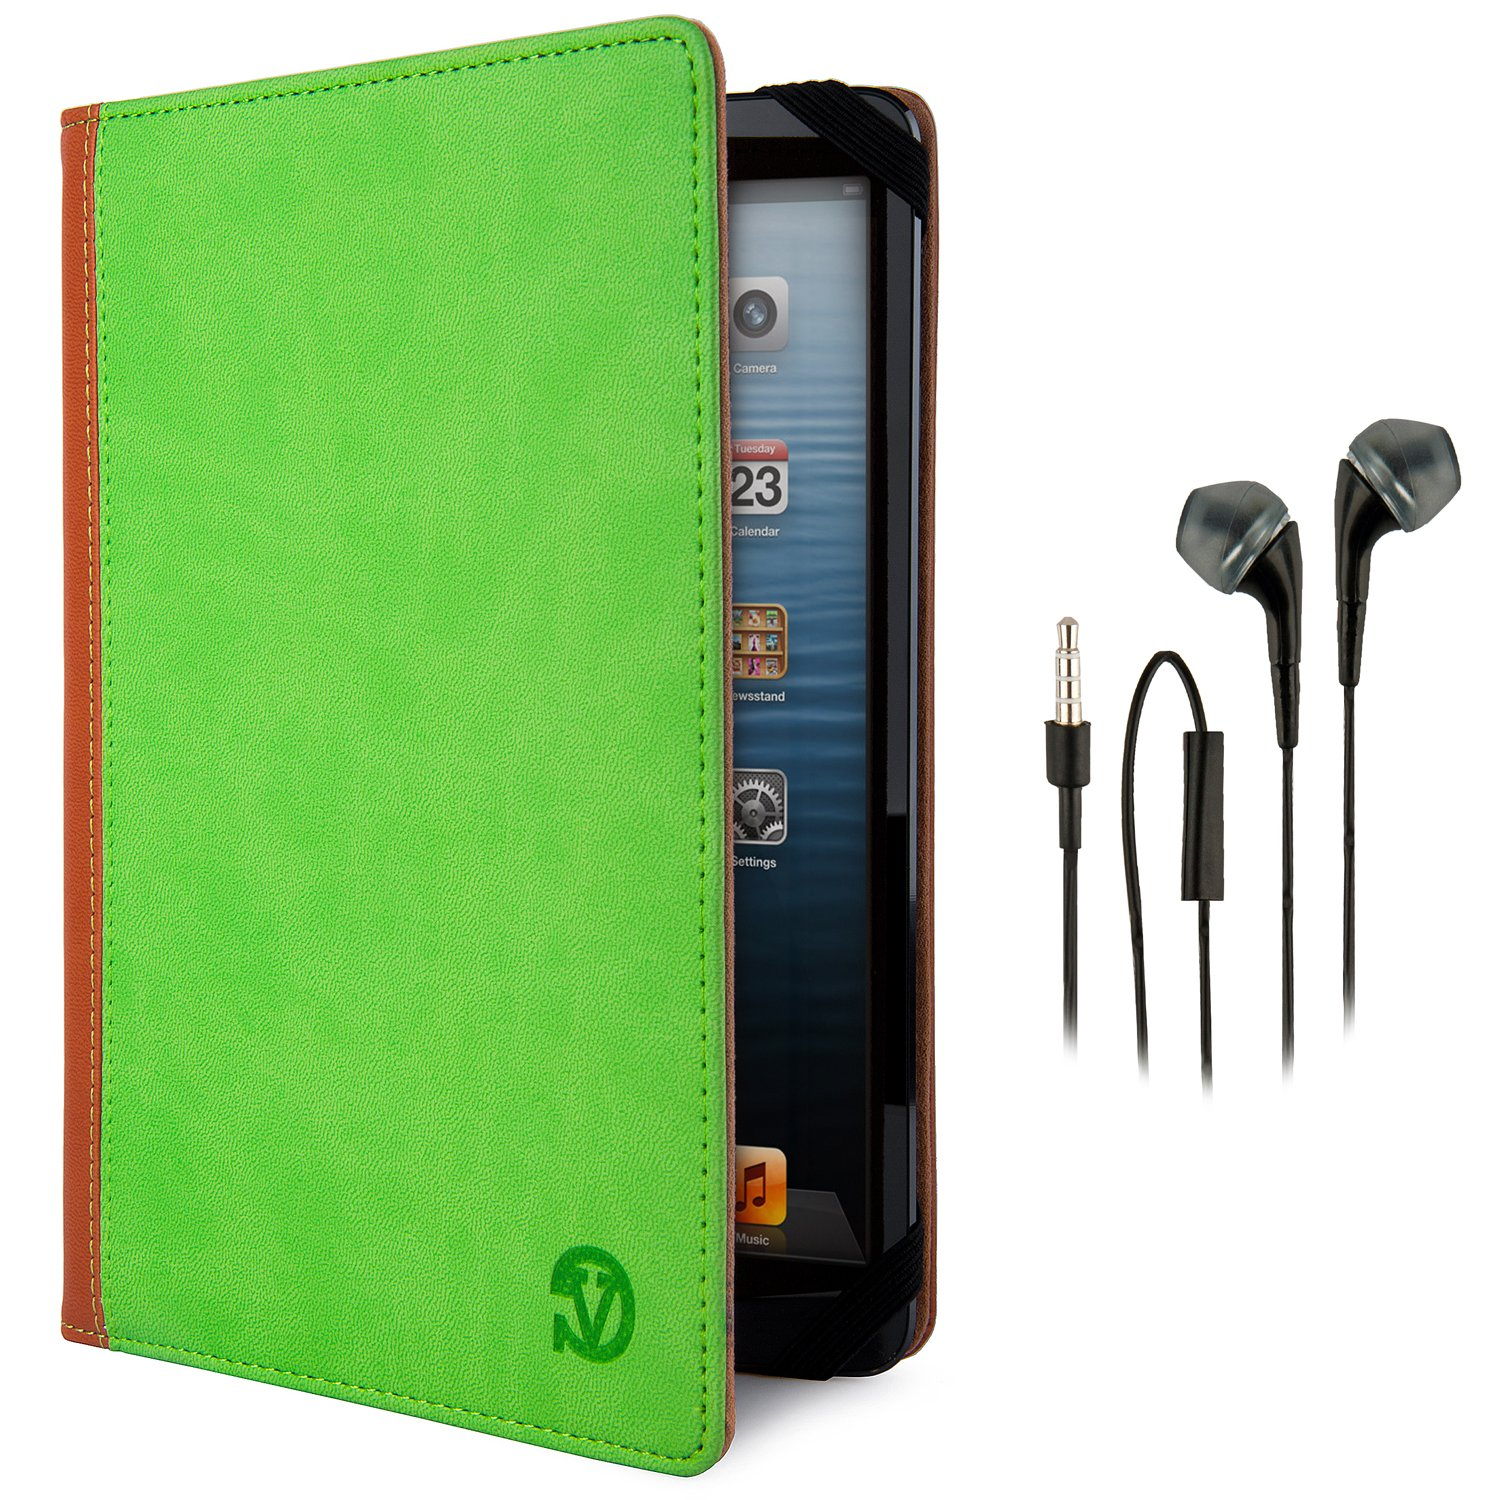 VanGoddy Mary Portfolio – Slim Flip Book Style Cover w/ Integrated Self Stand (LIME GREEN & TAN) fits Dell Venue 7 Smart Android Touch Tablet + Black Hands-free Earphones (Headphones with Microphone)